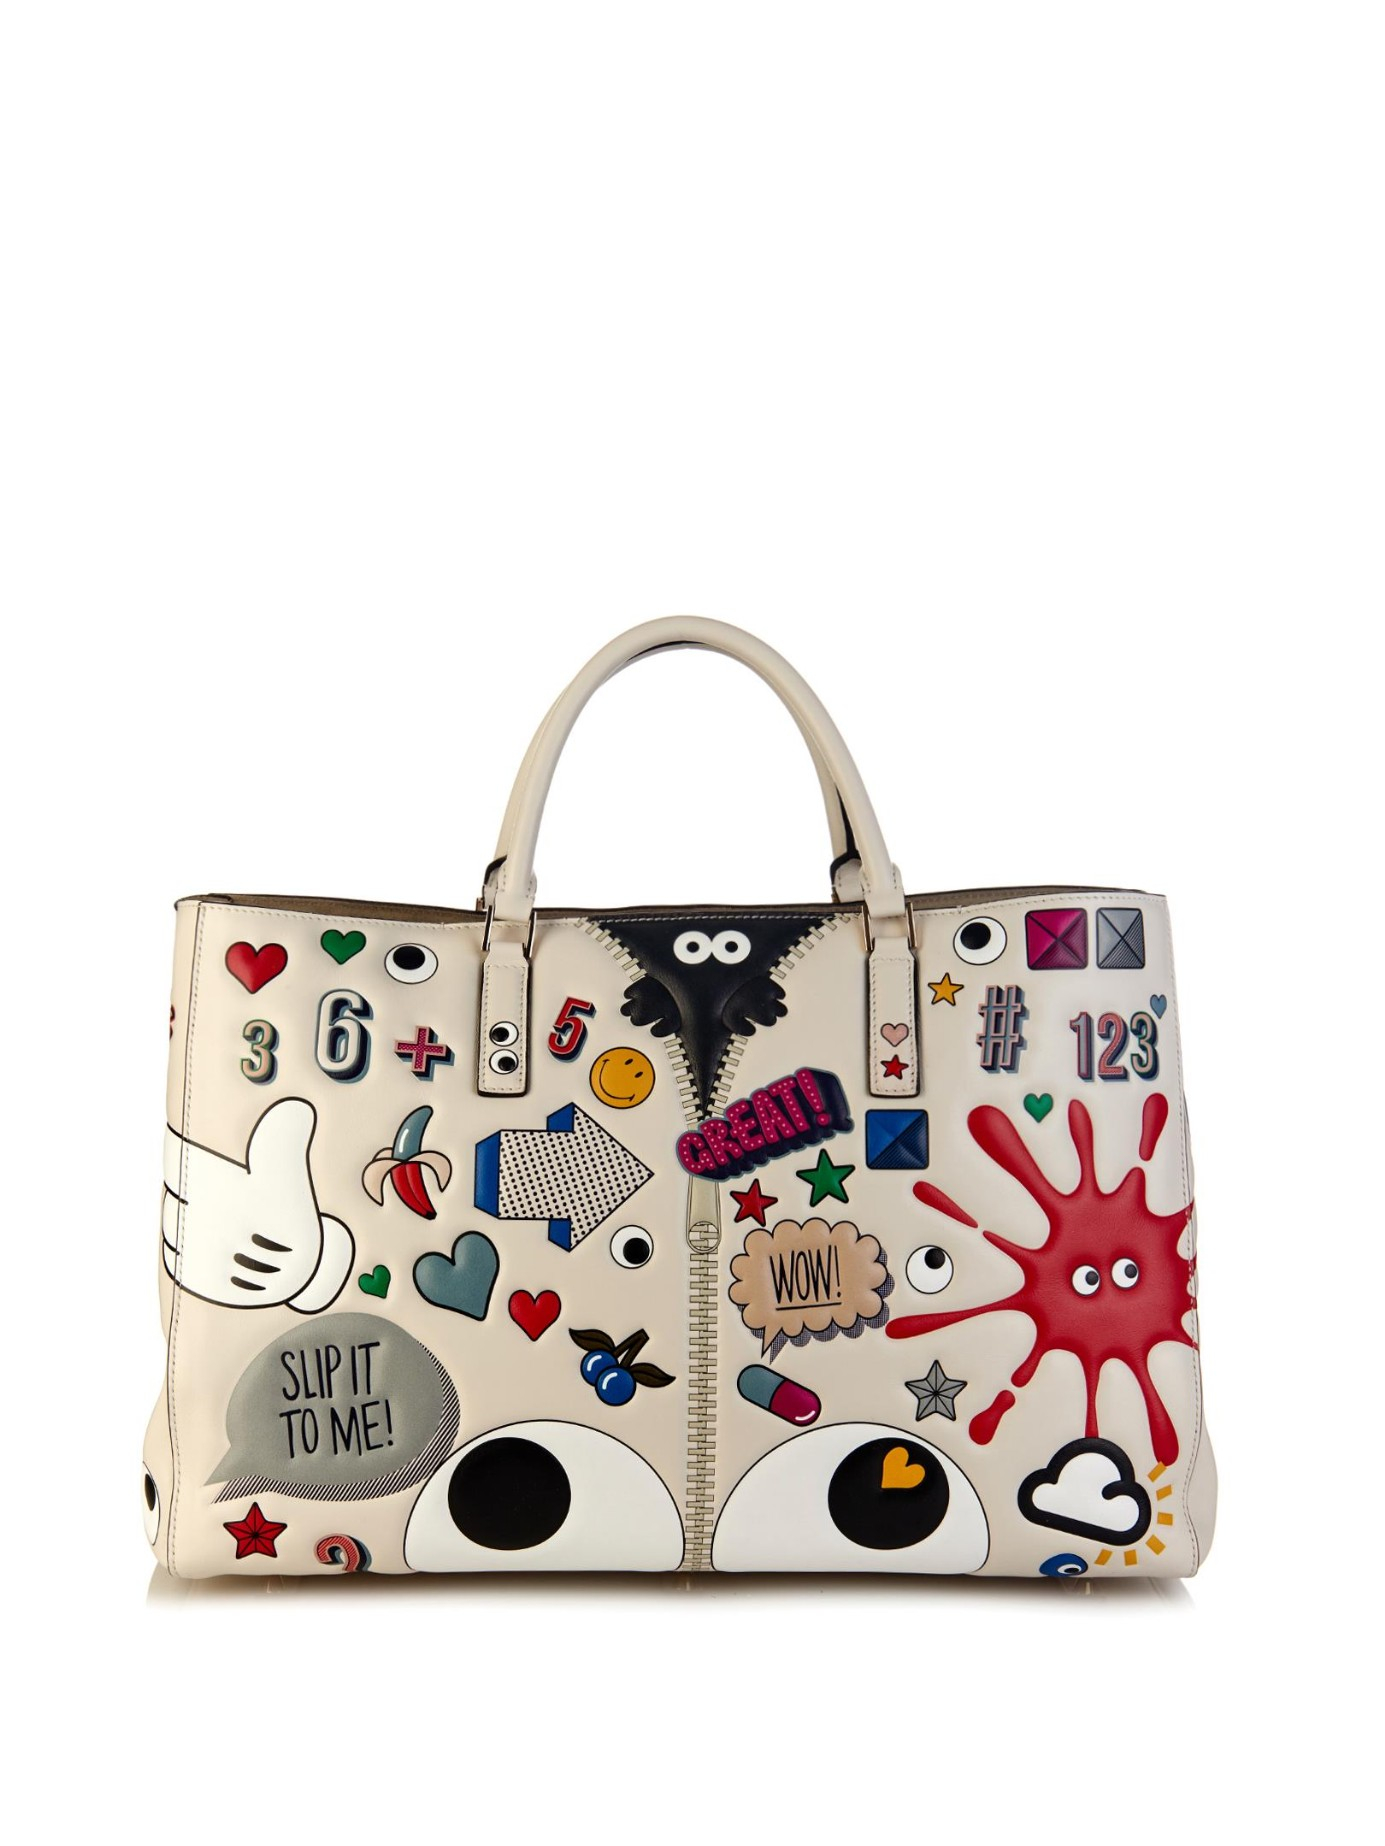 anya hindmarch ebury sticker print leather tote bag in multicolor save 29 lyst. Black Bedroom Furniture Sets. Home Design Ideas